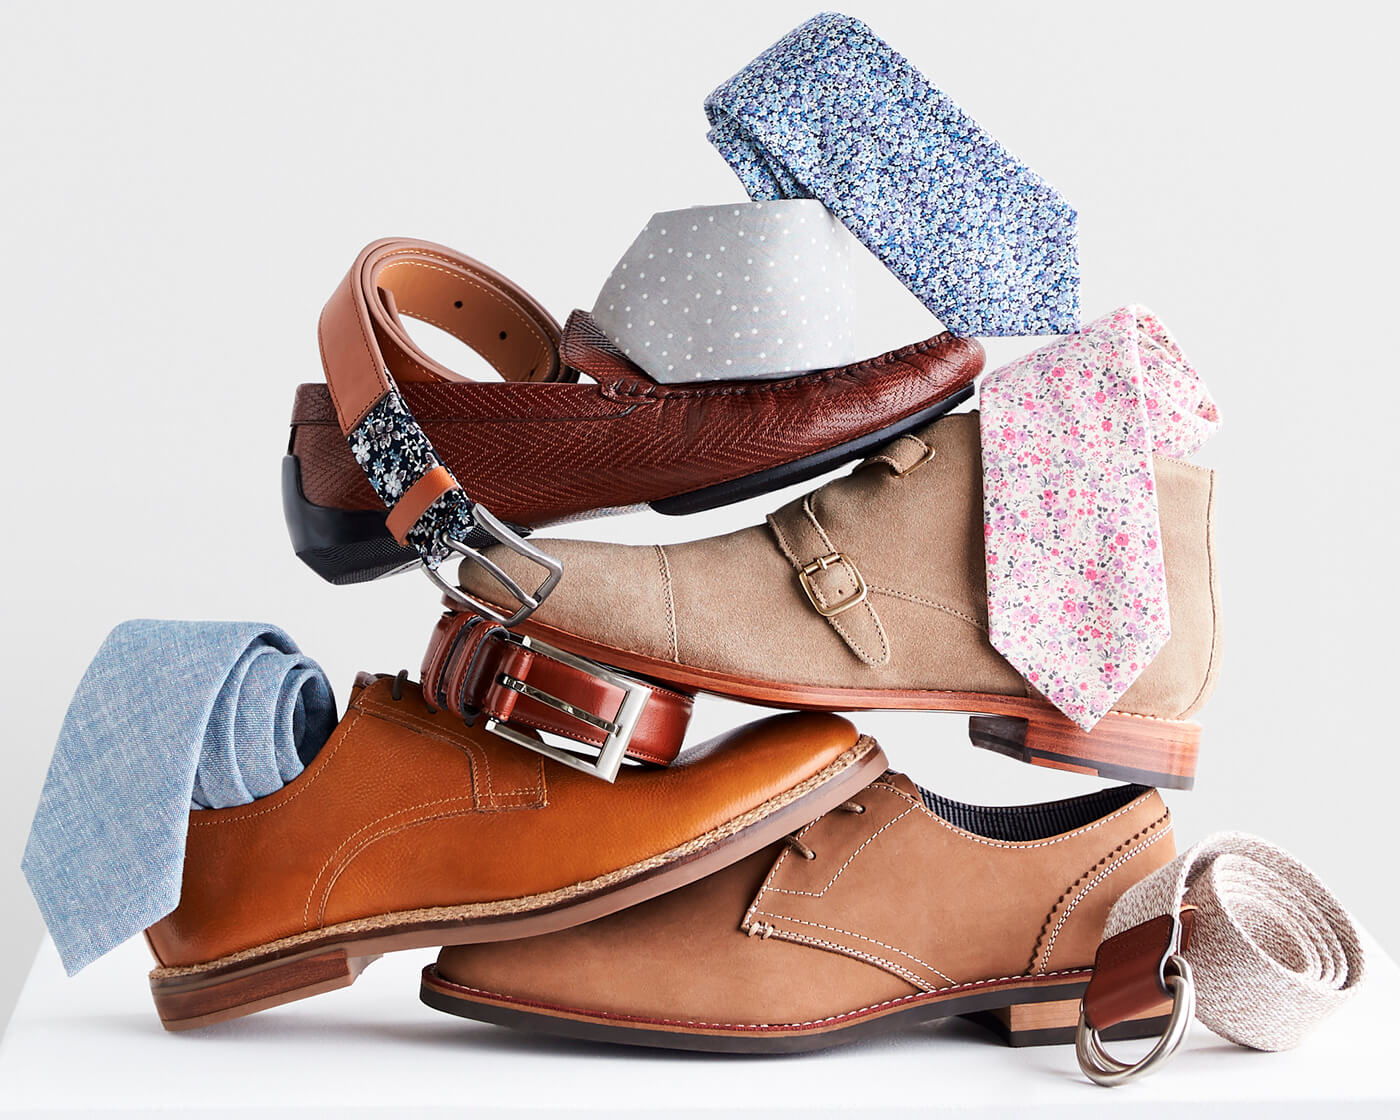 men's shoes and accessories